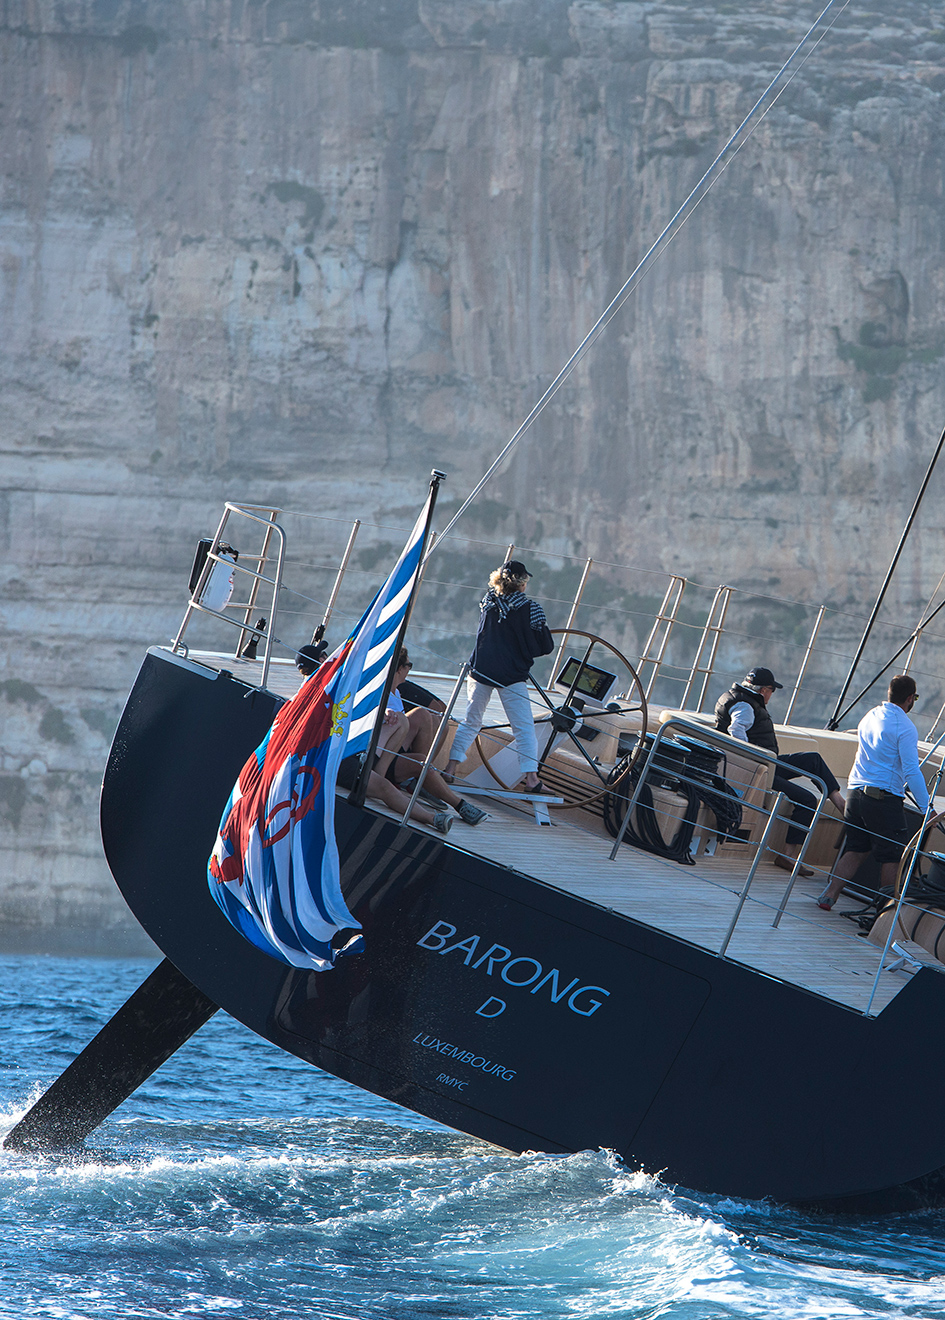 the-transom-of-wally-110-sailing-yacht-barong-d